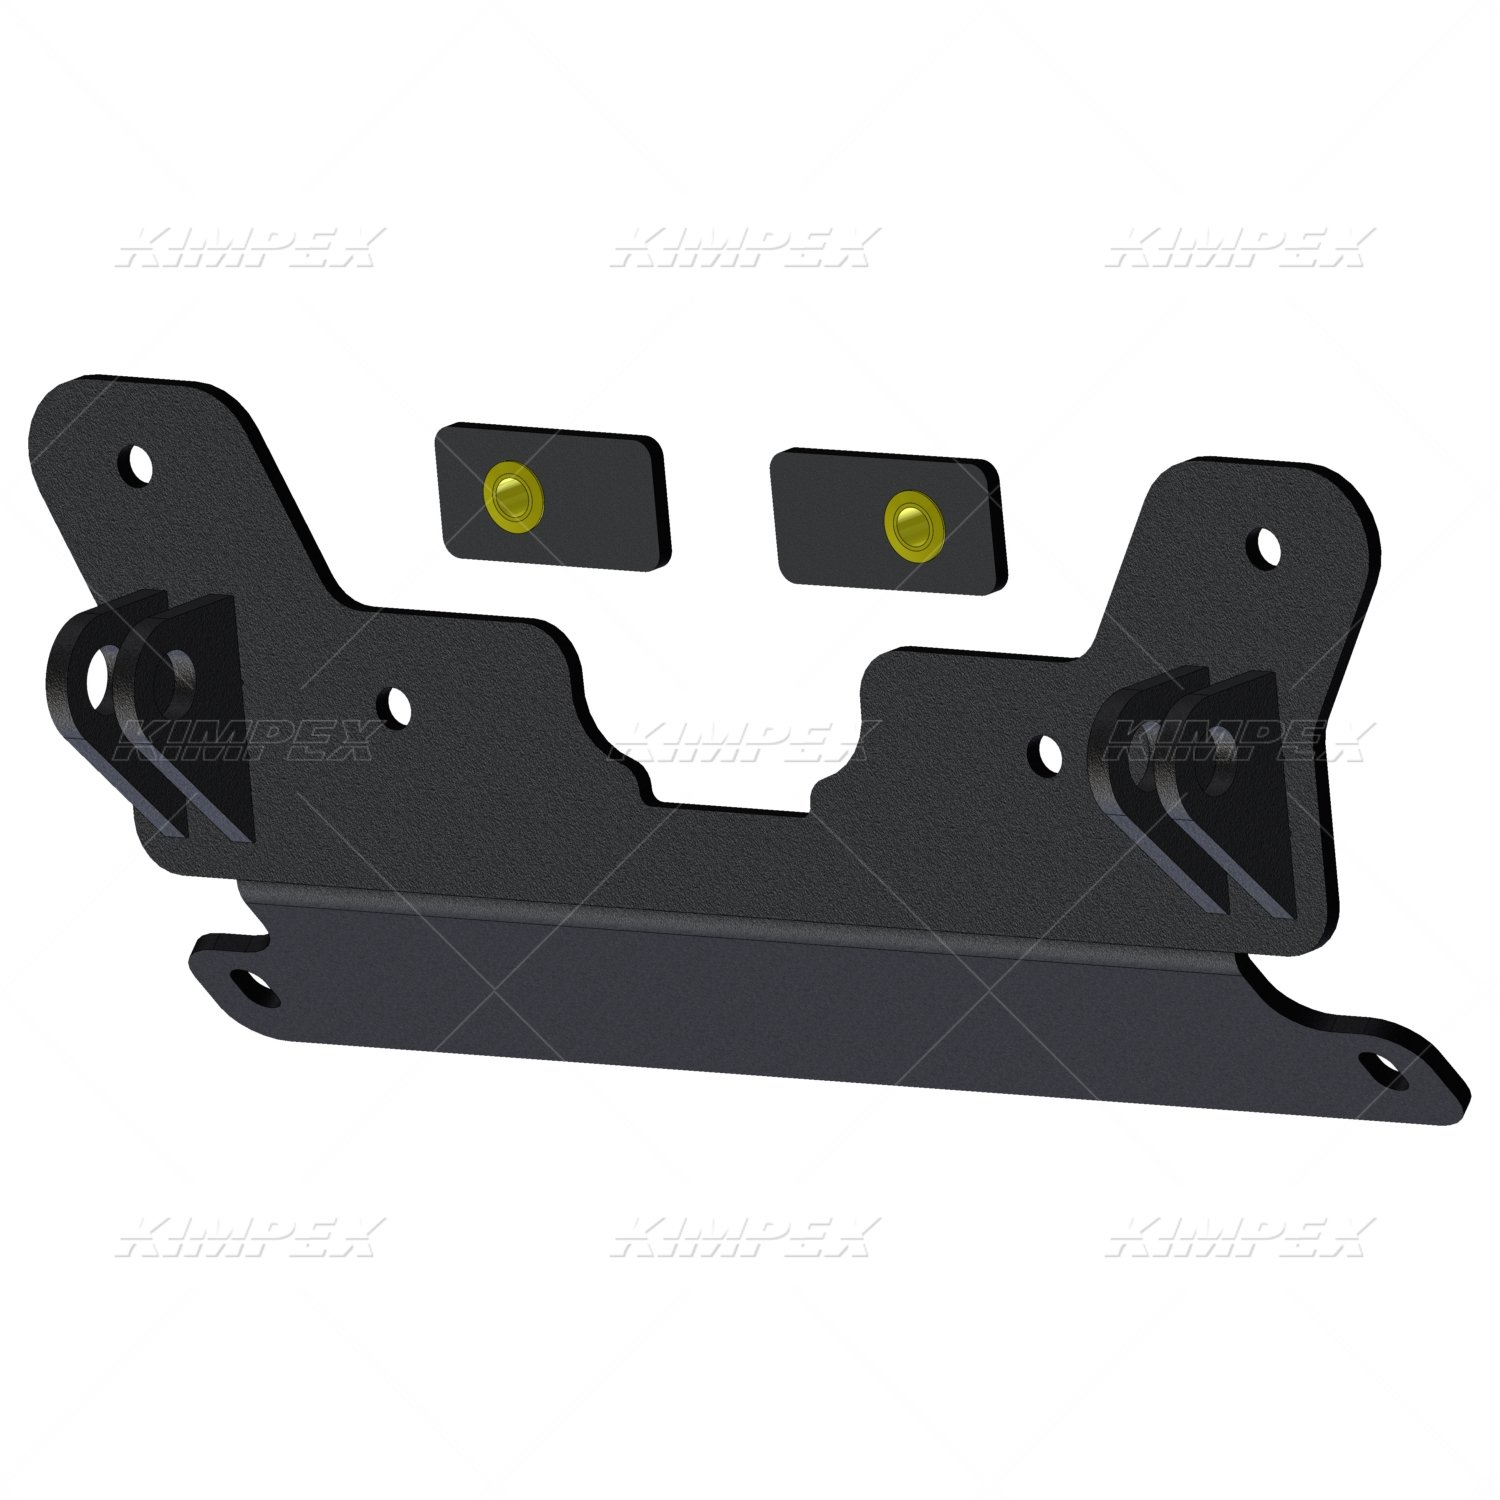 KFI PRODUCTS UTV Snow Plow Bracket